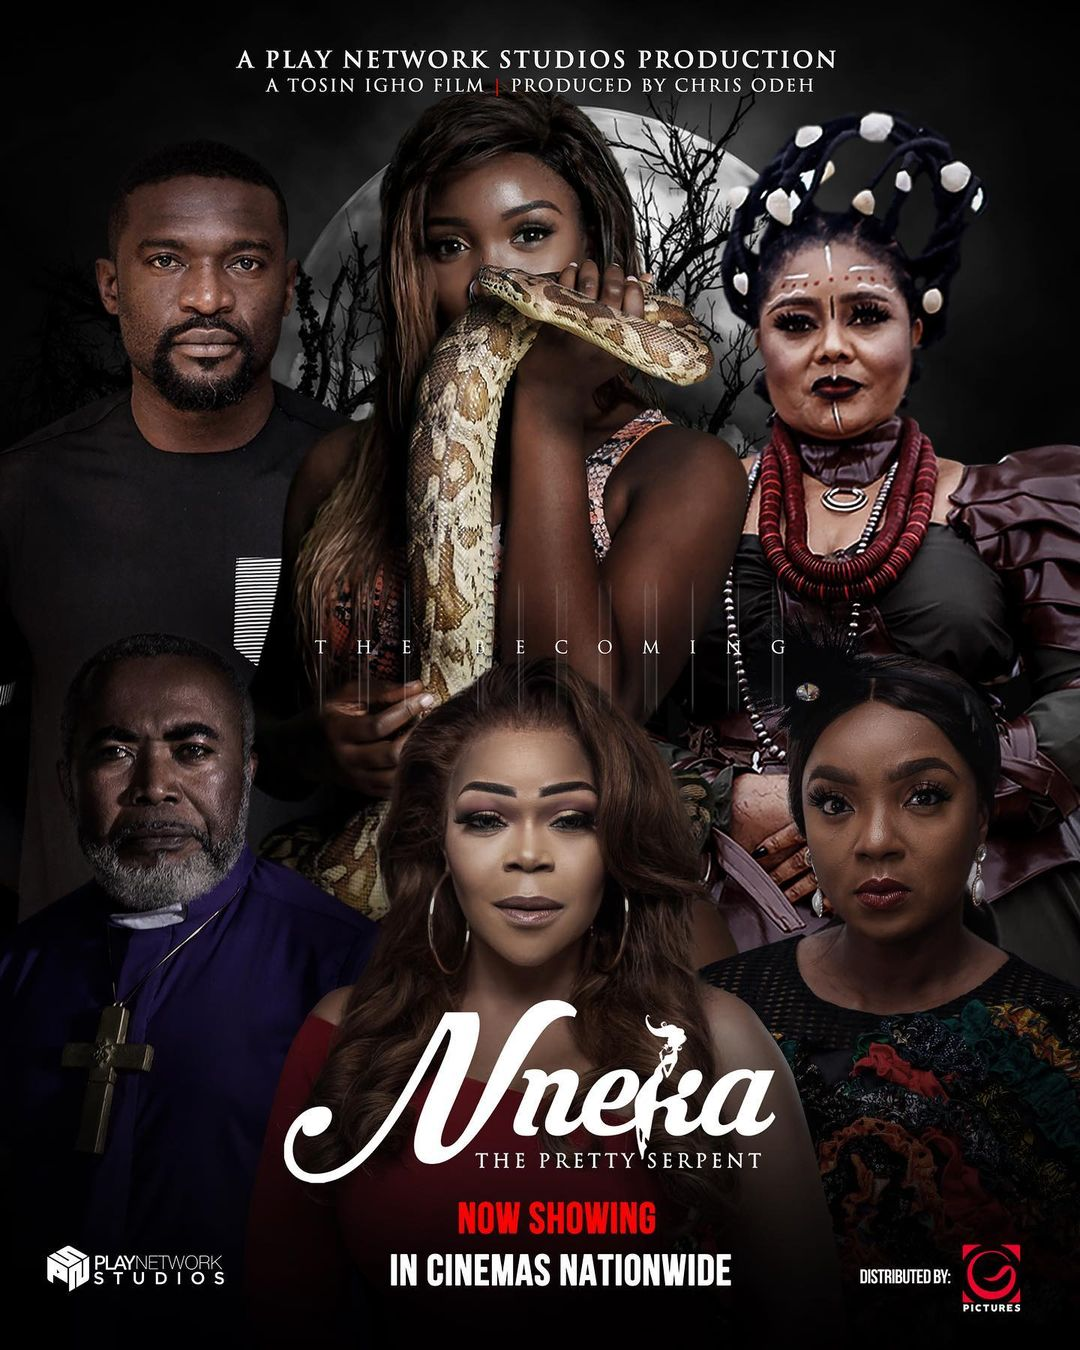 """131888284 226615412363598 5361686000572706420 n - """"Nneka The Pretty Serpent"""" Pulls N6.58 Million Opening with Friday Theatrical Loss"""